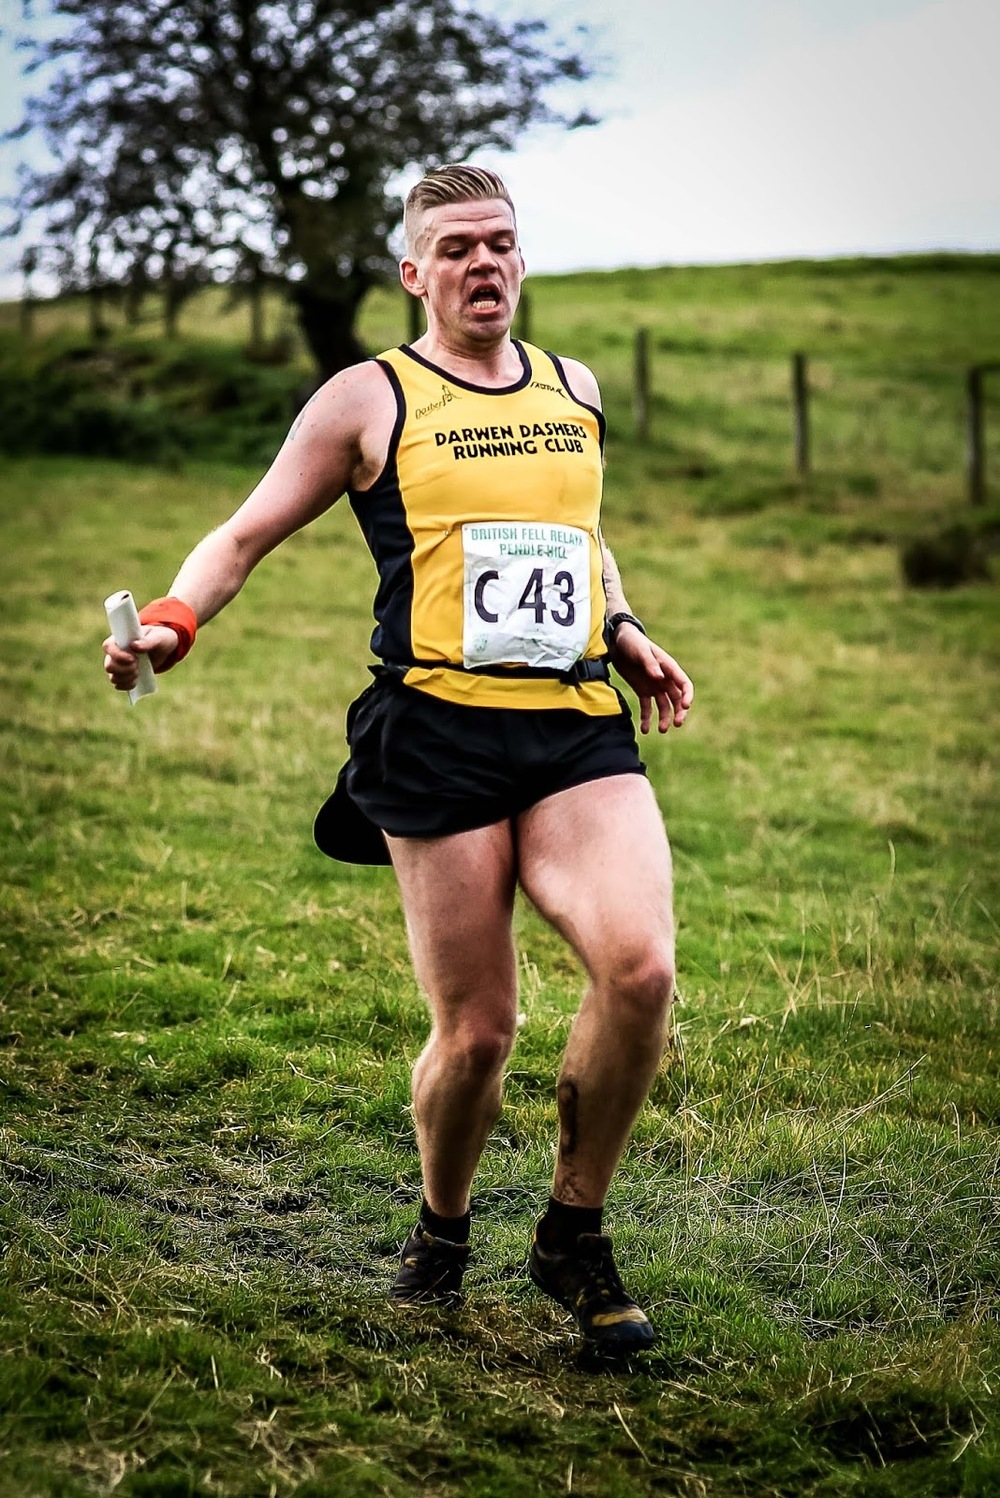 The 2015 British fell relays at Pendle - add your own caption, ha ha